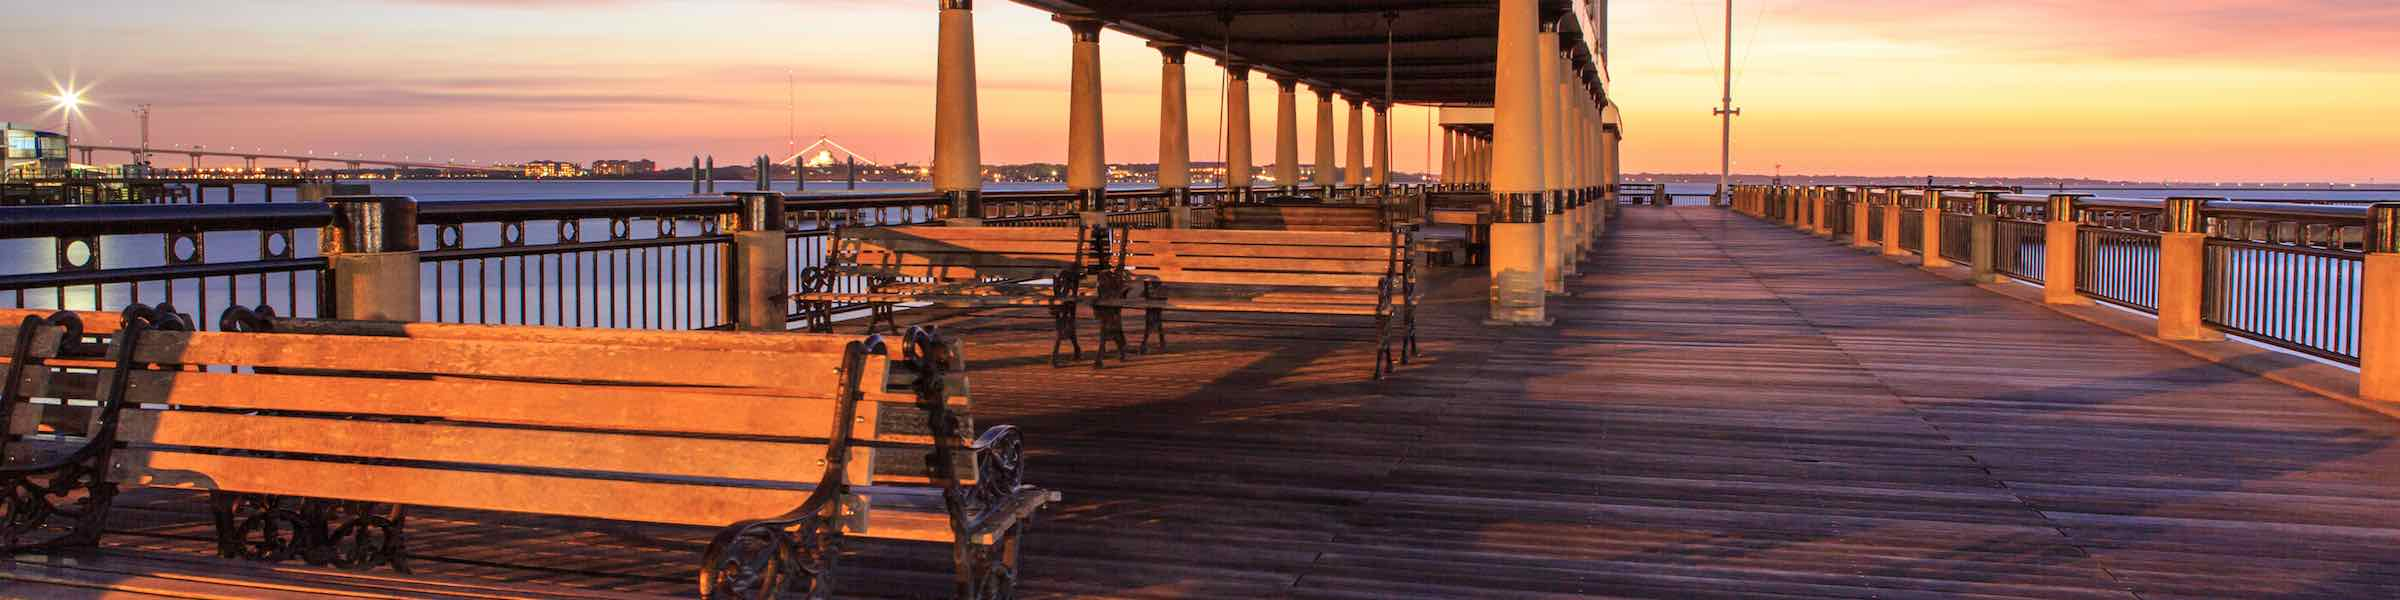 Sunset view of the pier at Waterfront Park, Charleston, SC.